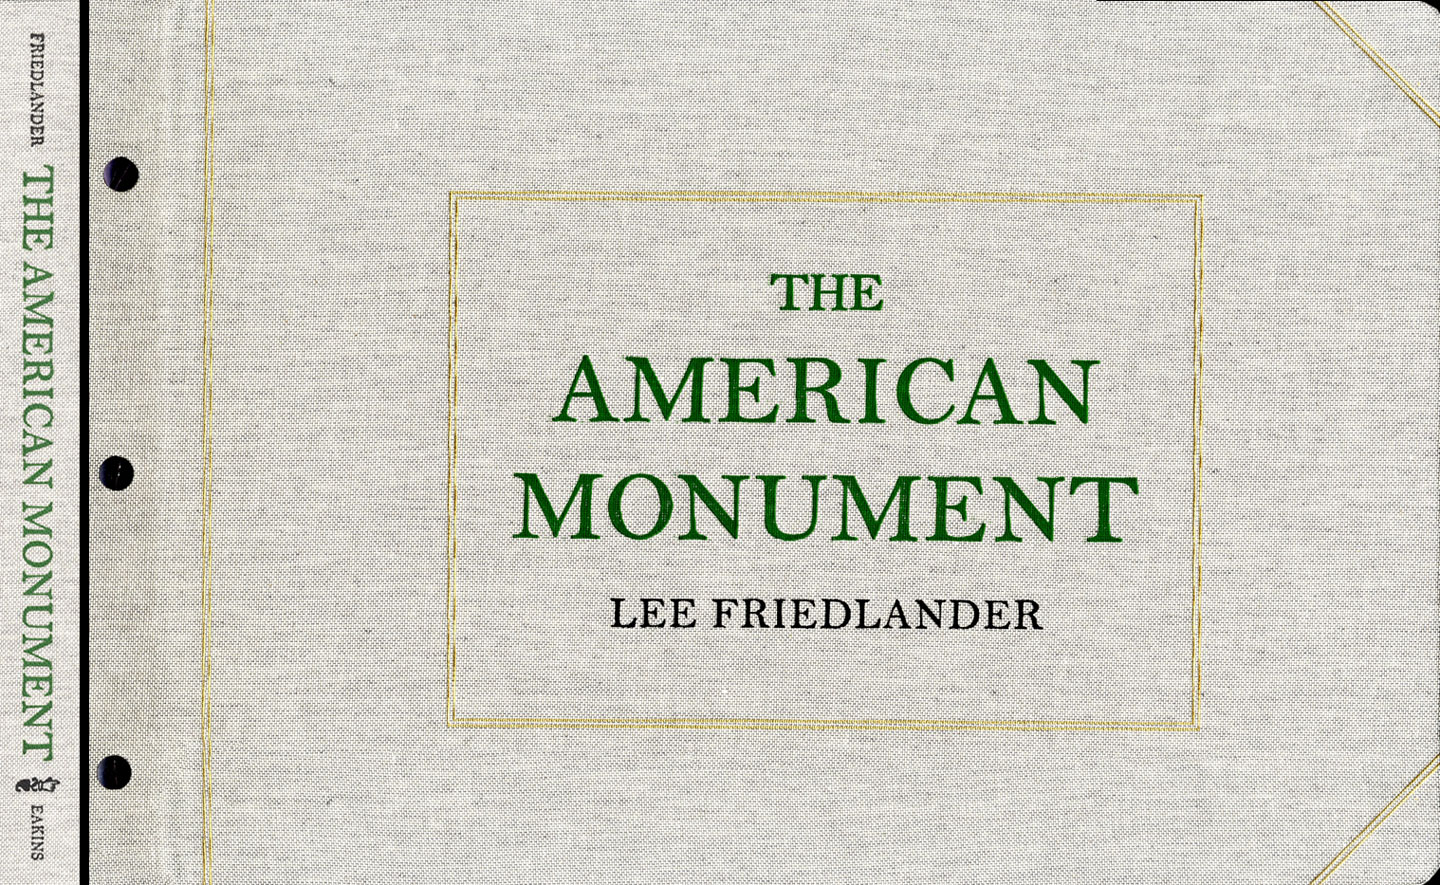 Lee Friedlander: The American Monument (Eakins Press Reissue) [SIGNED]